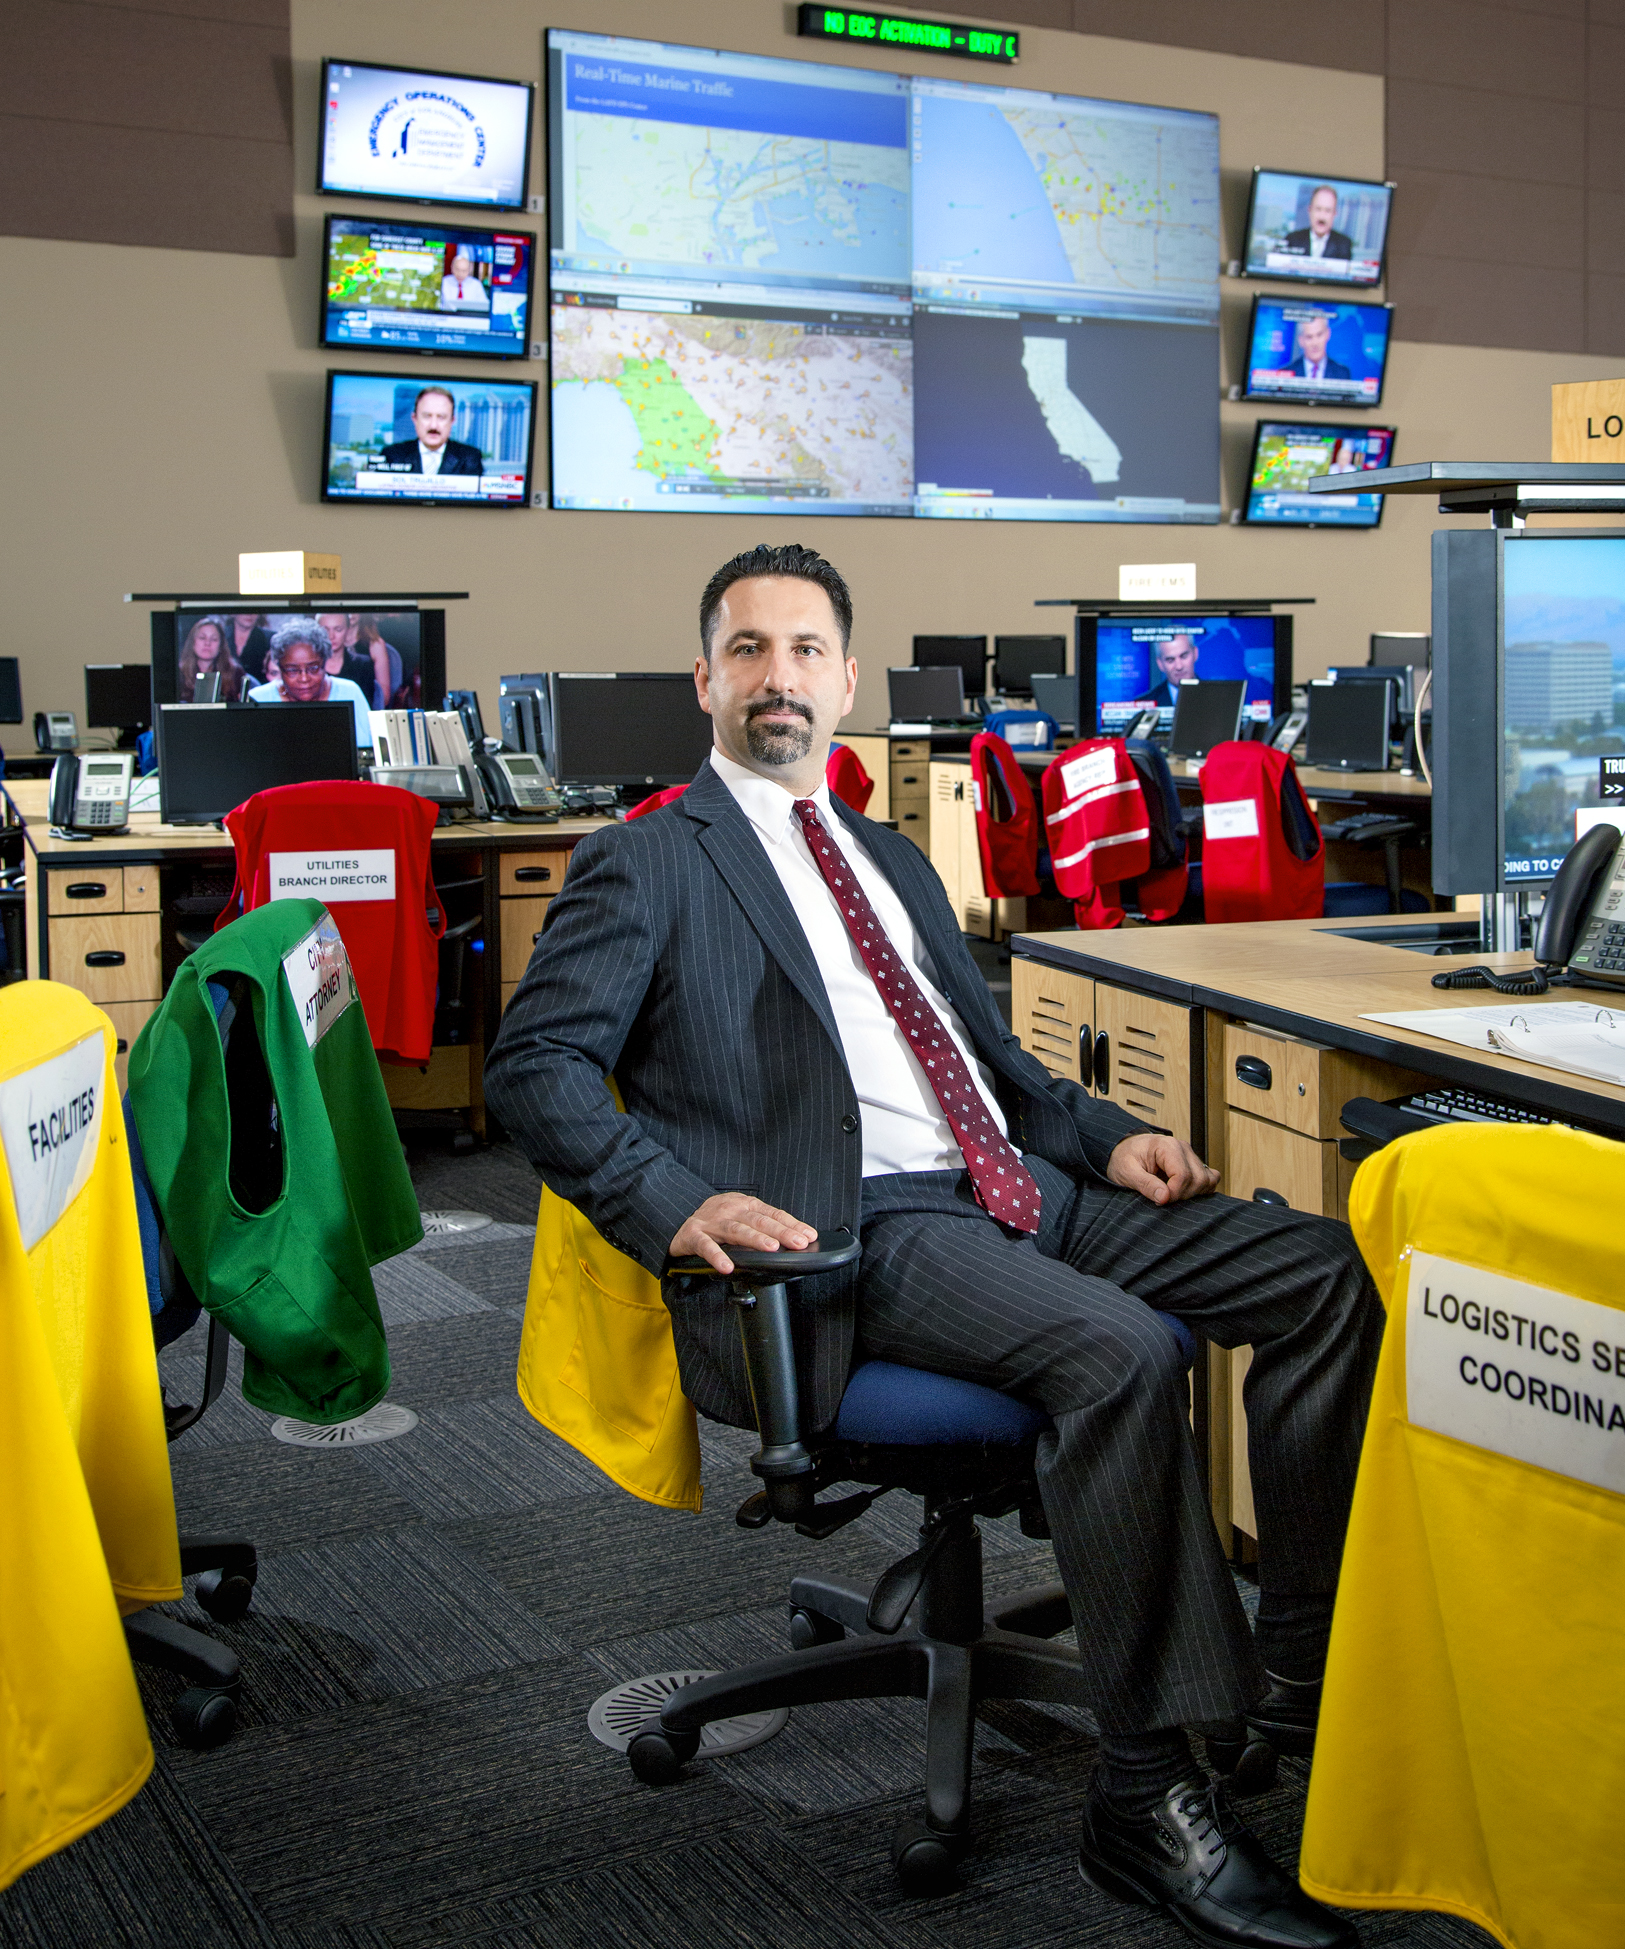 Ted Ross, CIO, City of Los Angeles photographed in LA's Emergency Operation Center.